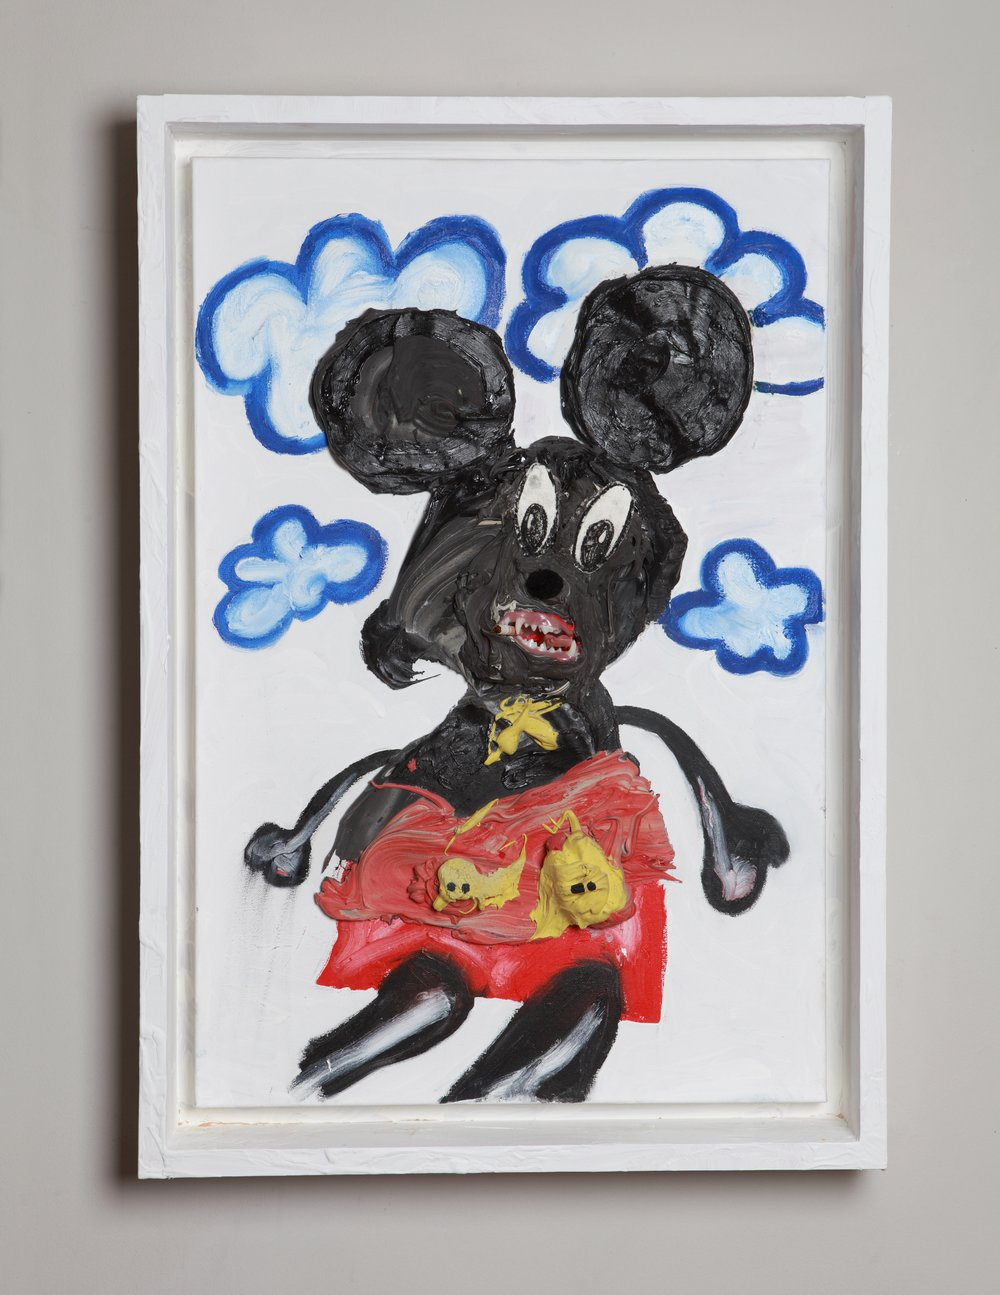 Mickey Mouth, 76.5 x 50.6 x 10 cm, 2019.